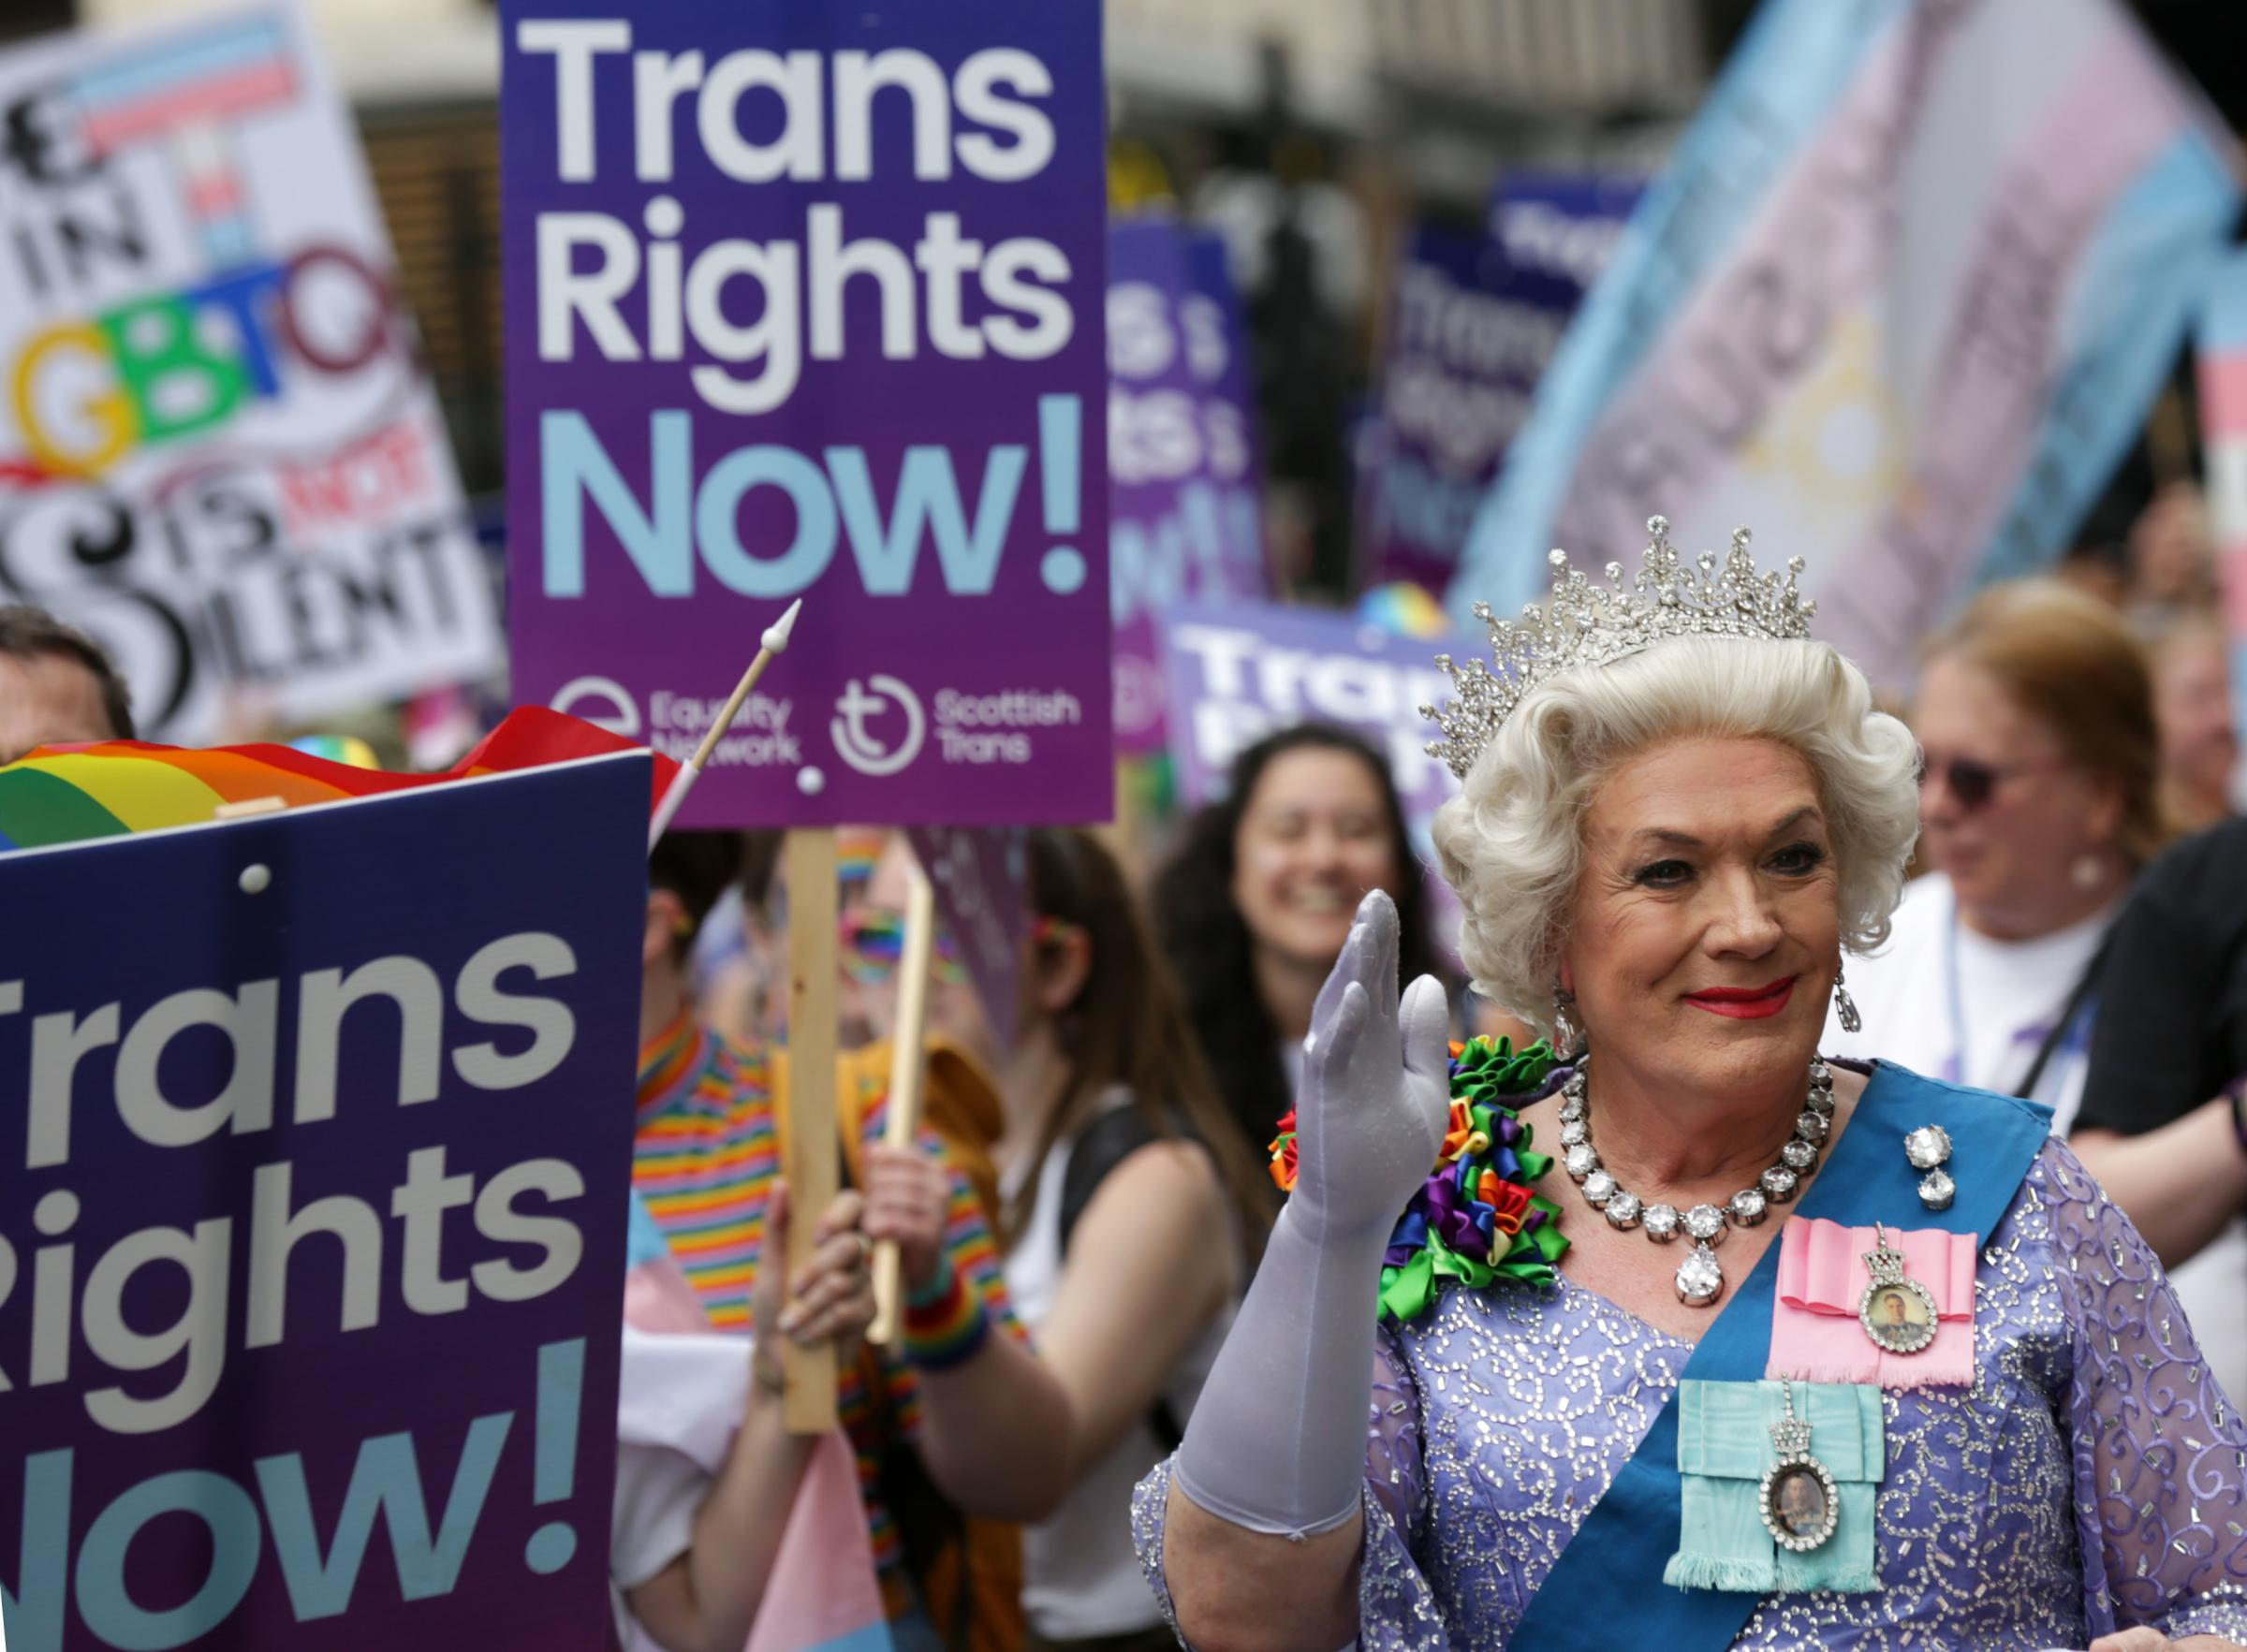 LGBT groups pen open letter in support of GRA reforms and trans rights